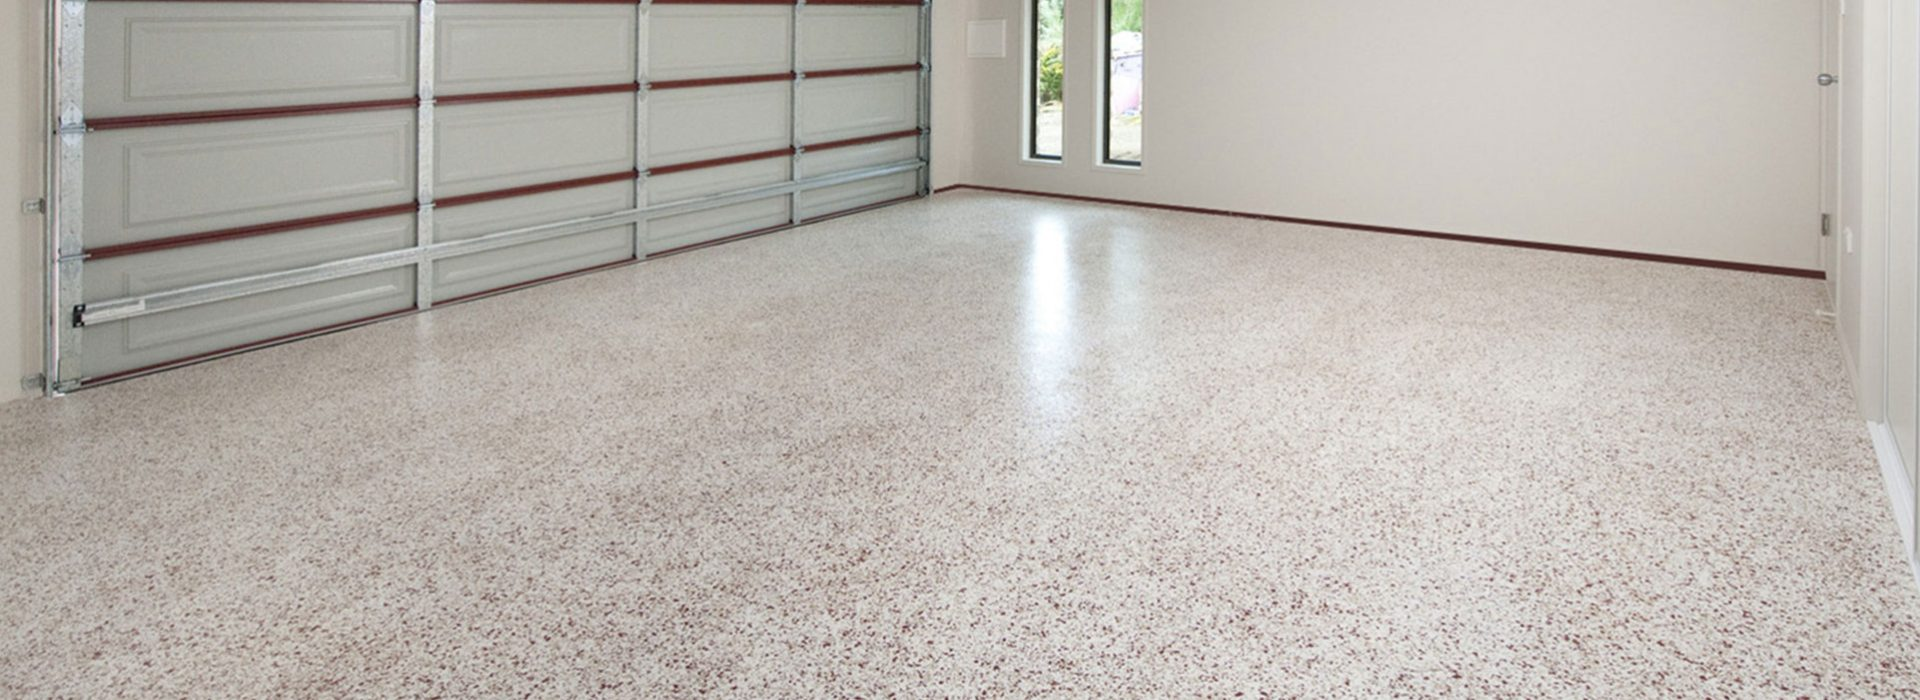 Decorative epoxy floor finish for two car garage